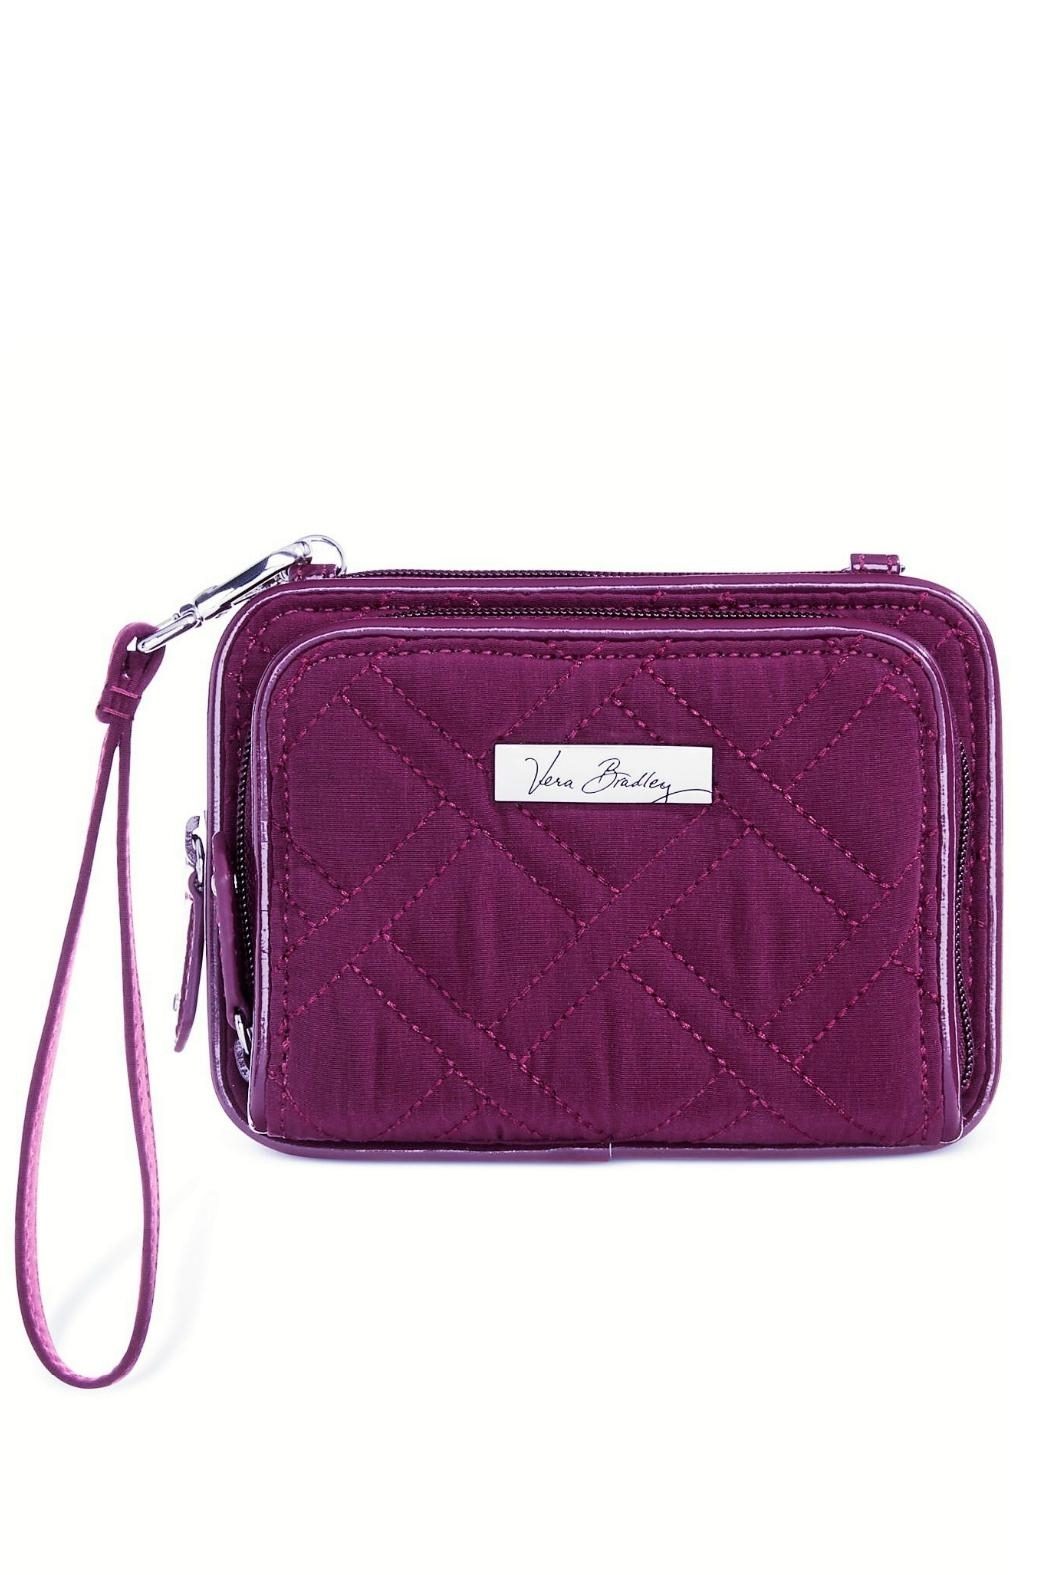 Vera Bradley Plum On-The-Square Wristlet - Main Image